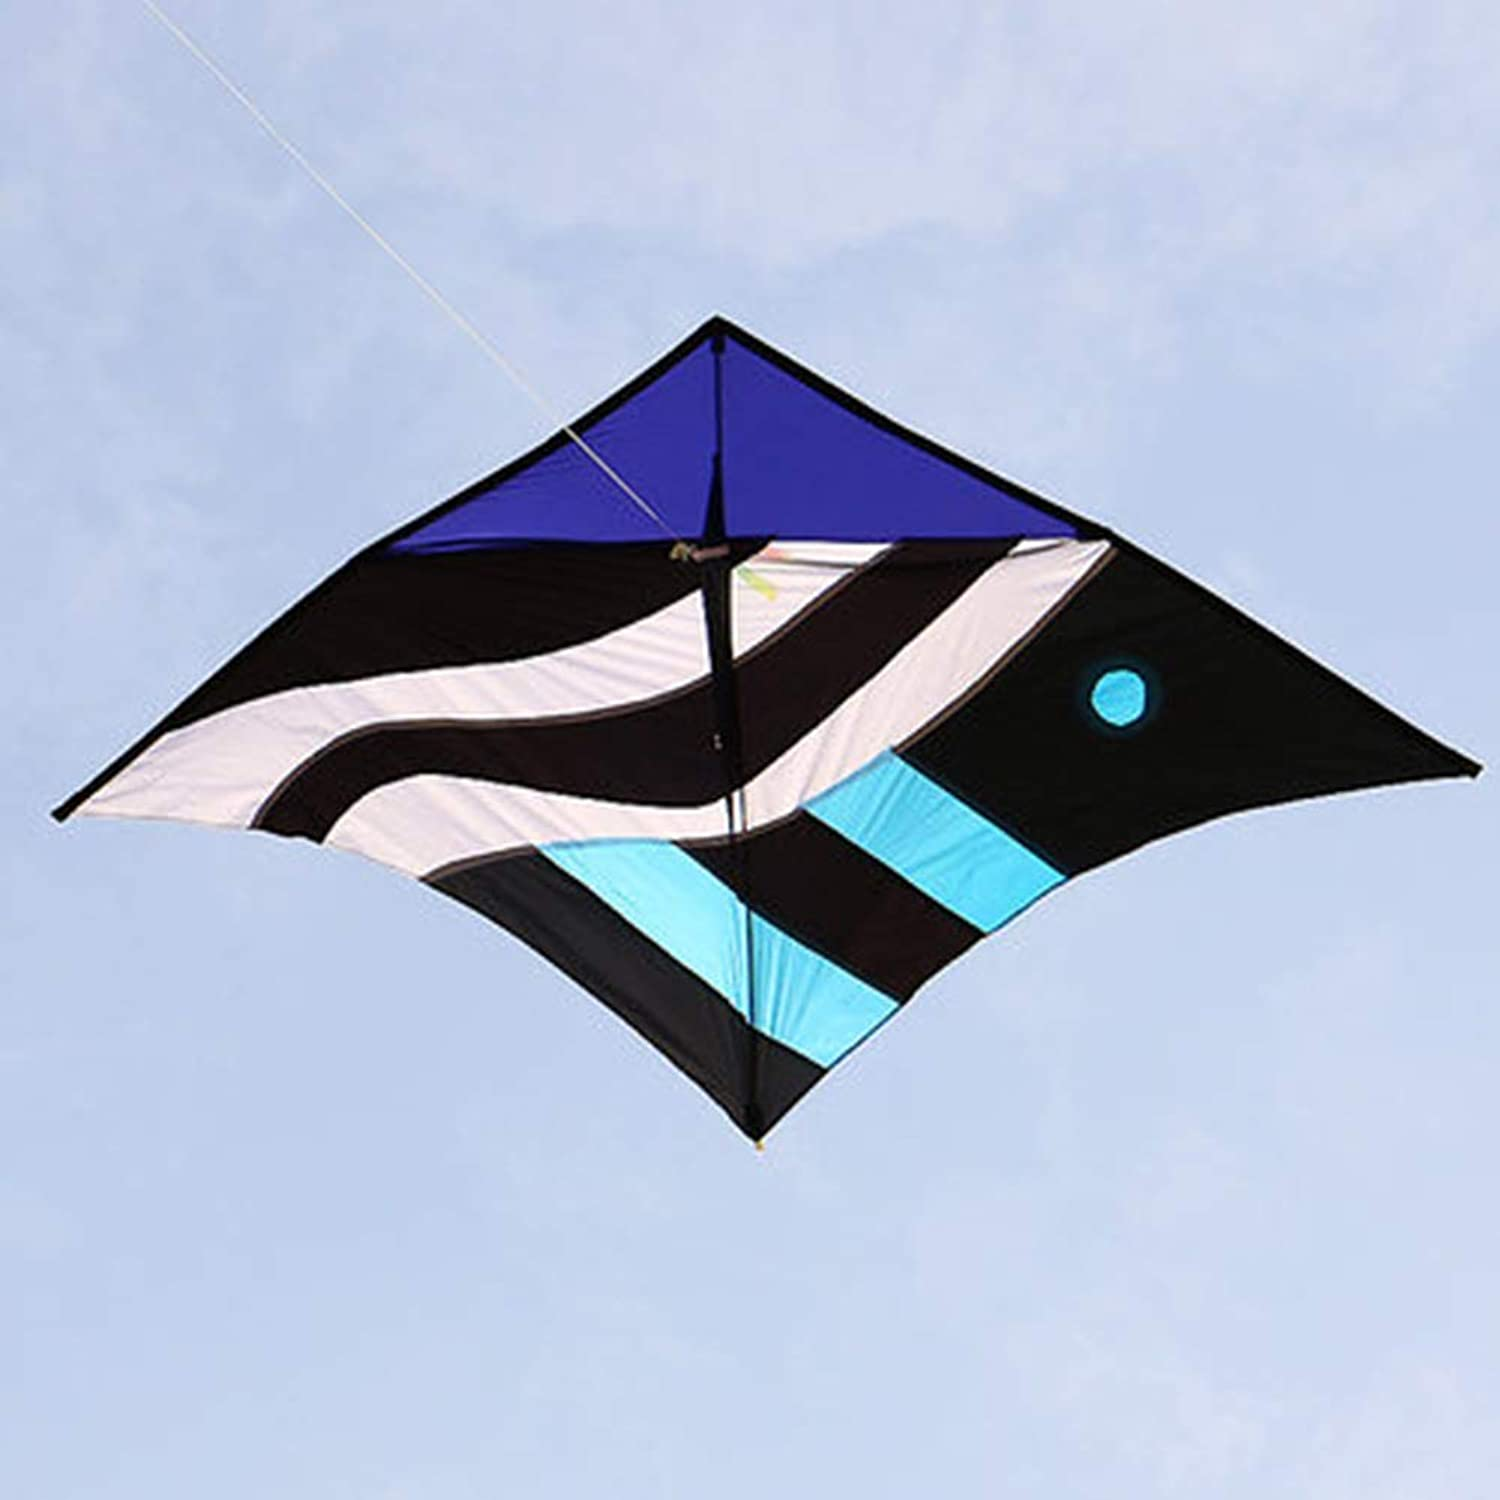 Kite Tropical Fish Brainstorm Products Very Easy to Fly Great for Beginners Perfect Kites